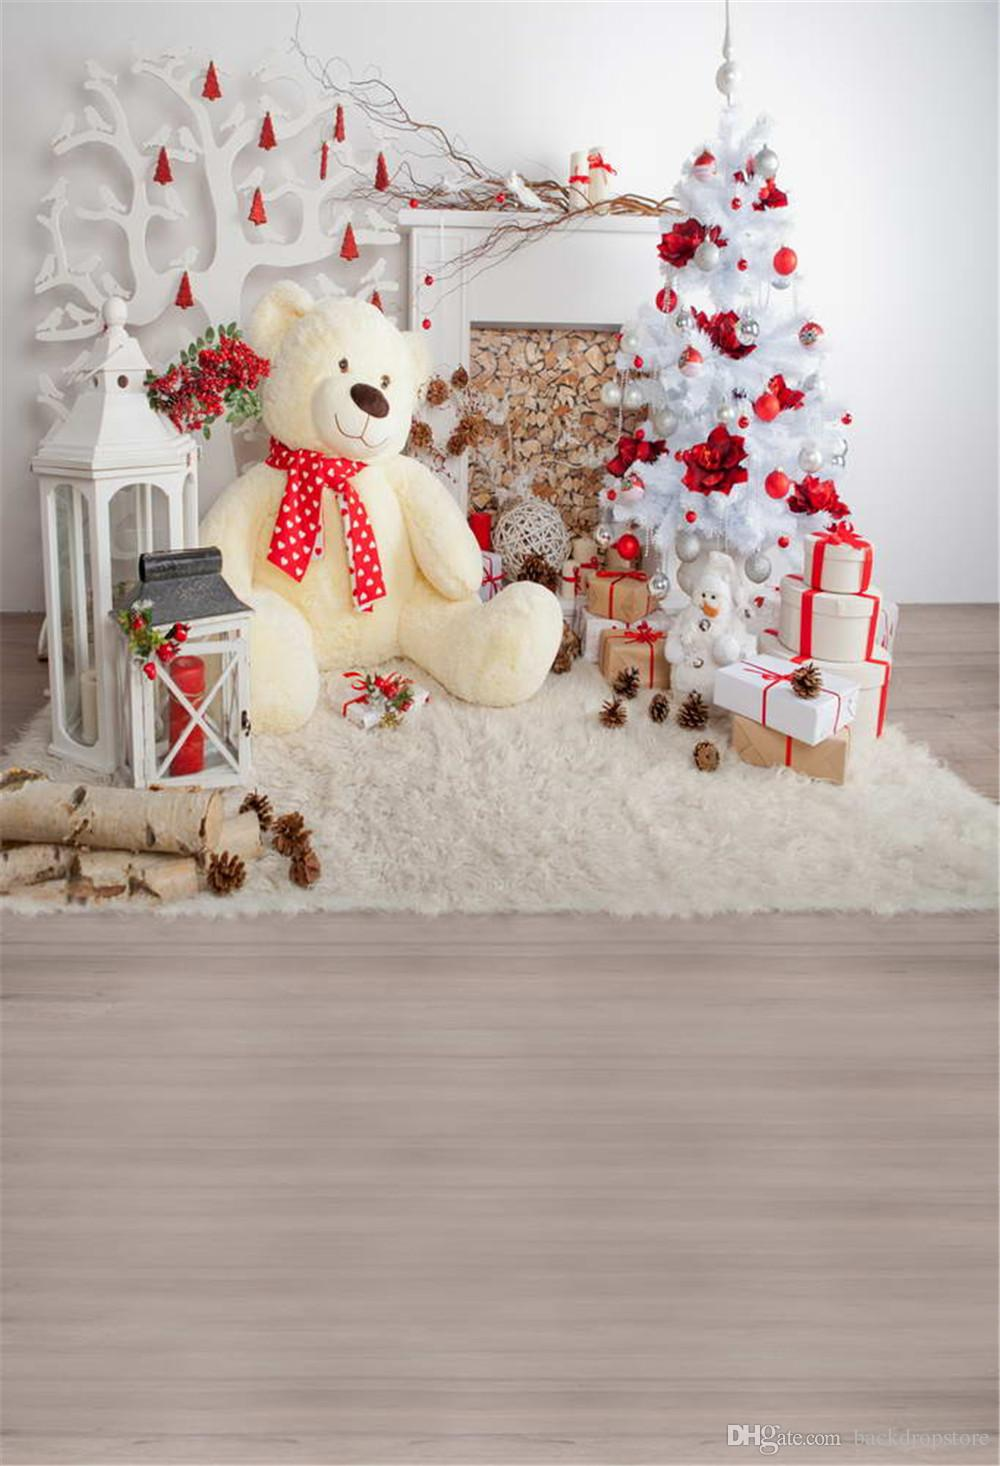 2018 xmas photography backdrop white christmas tree with silver red balls flowers big toy bear children kids photo studio background wood floor from